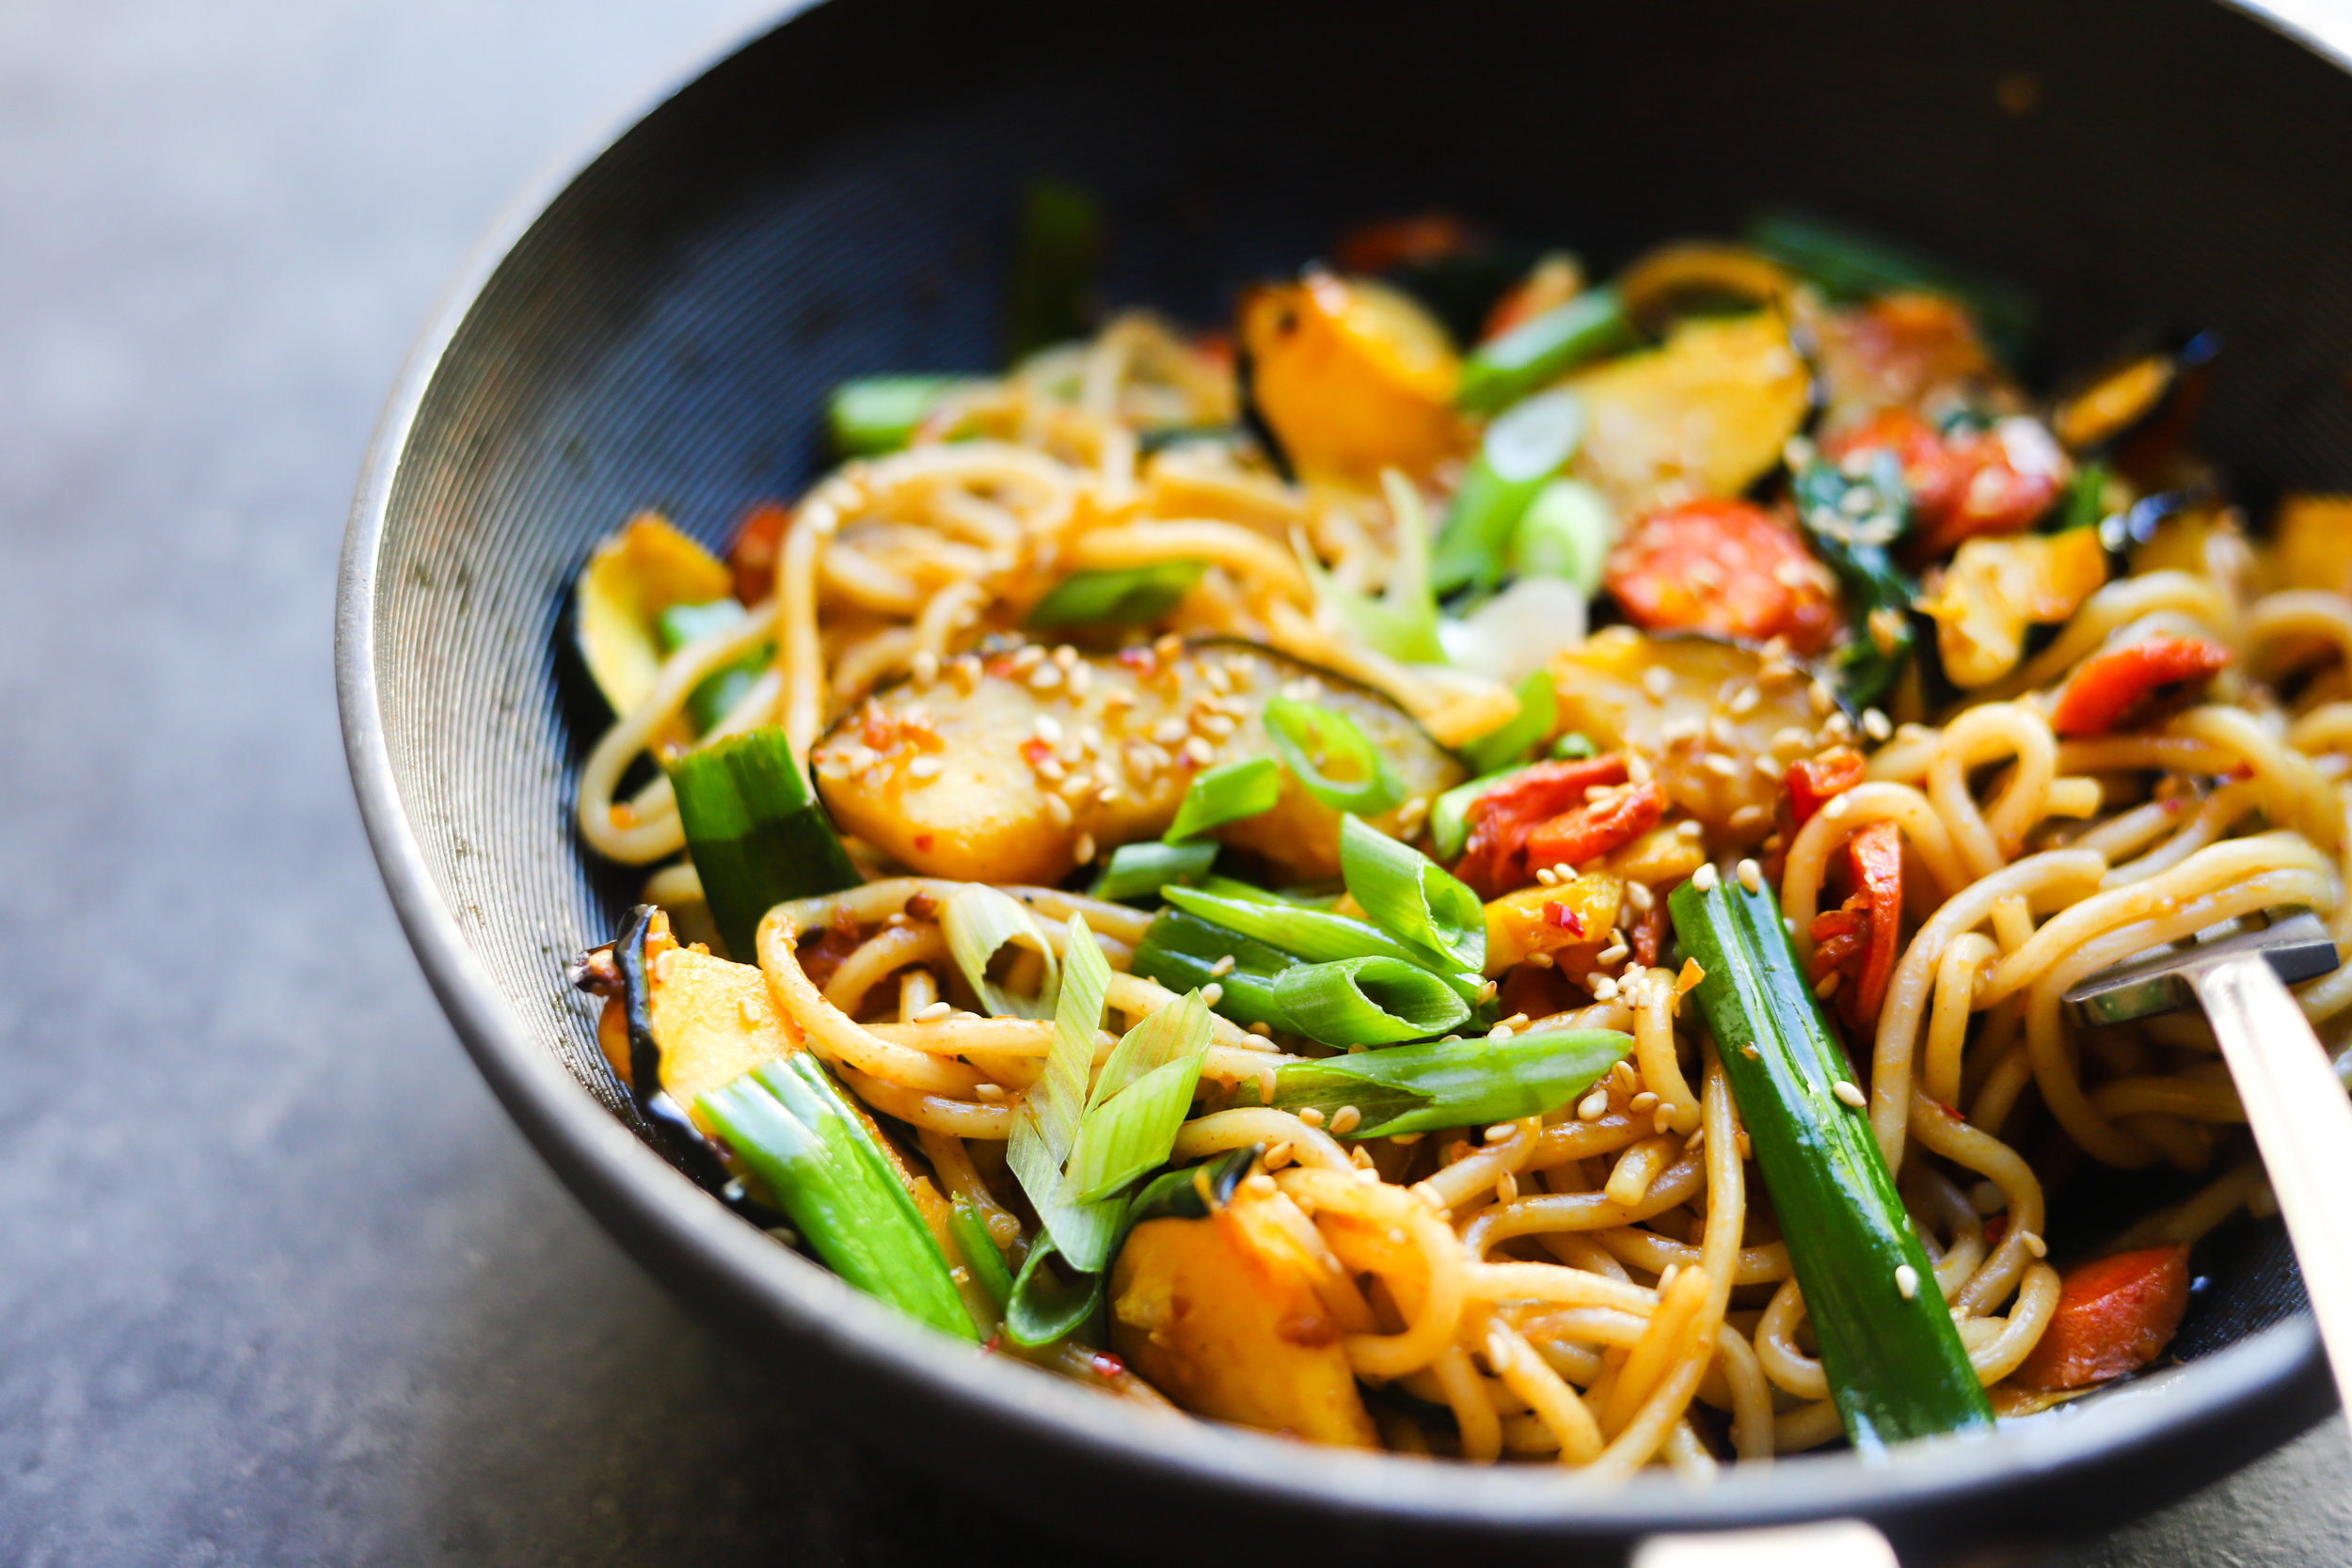 Fall Stir Fry Ramen with Squash, Carrots and Spinach